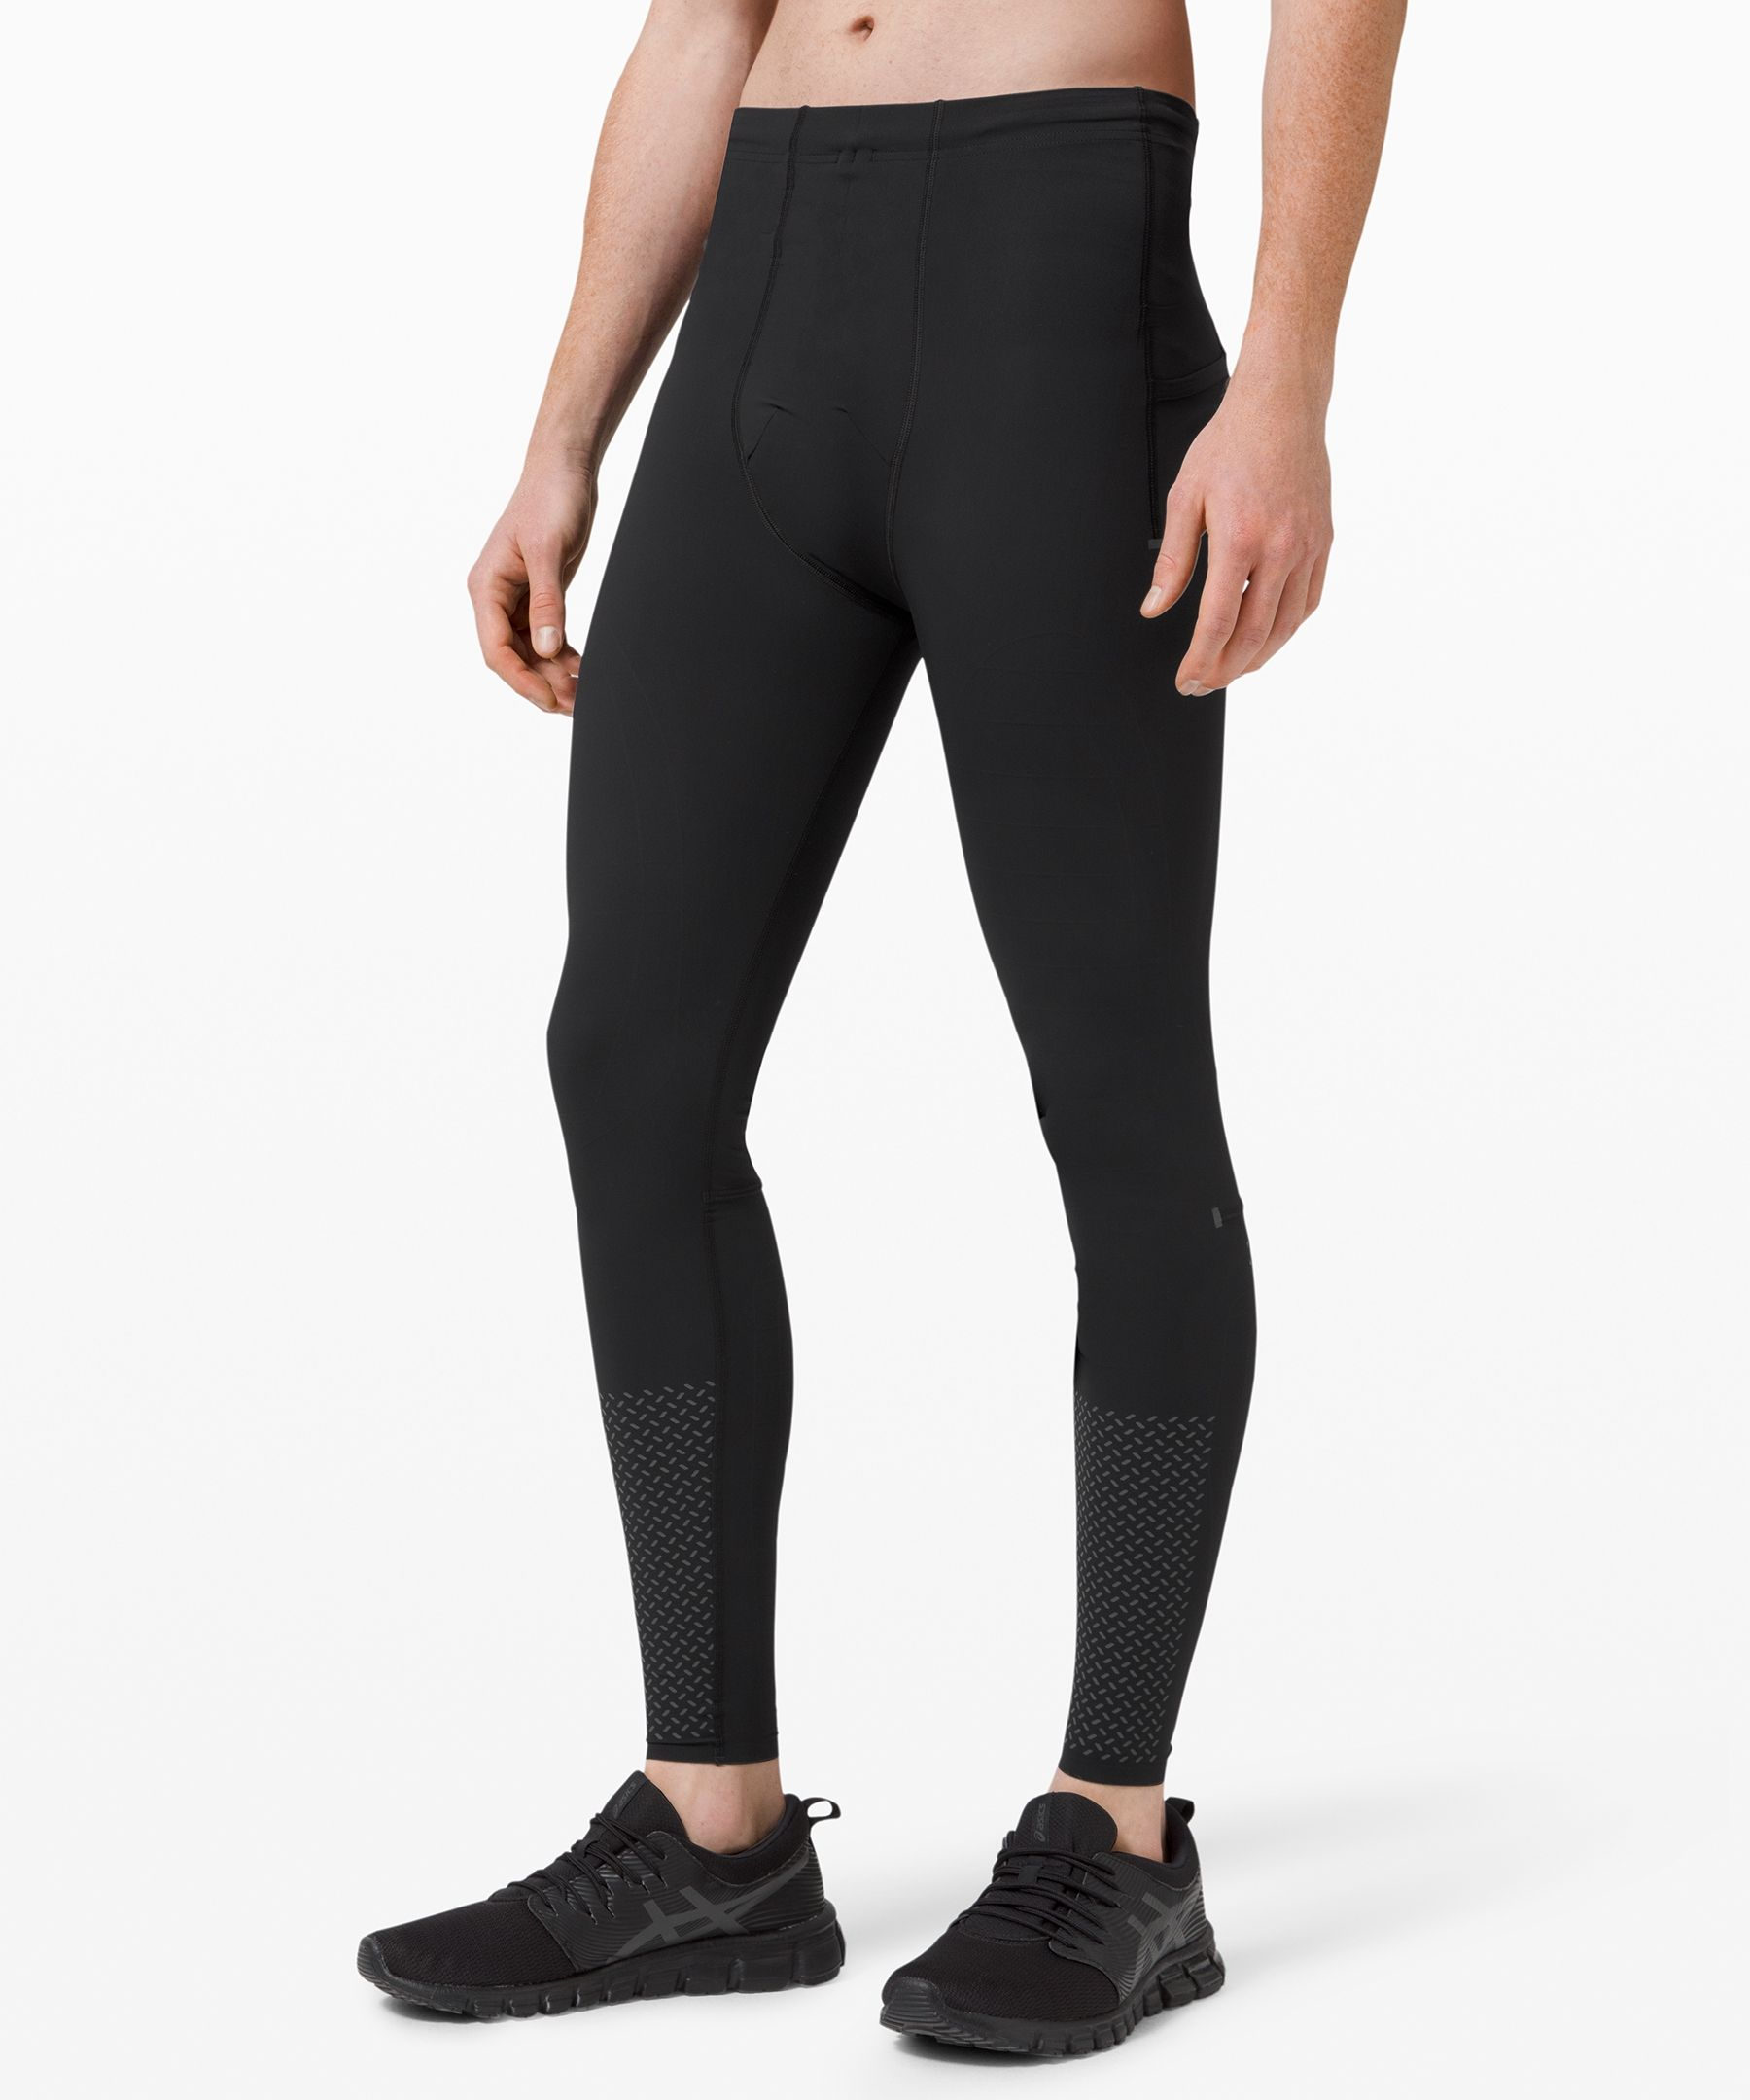 Mens Compression Pants Gym Sport Base Layer Leggings Running Fitness Trousers